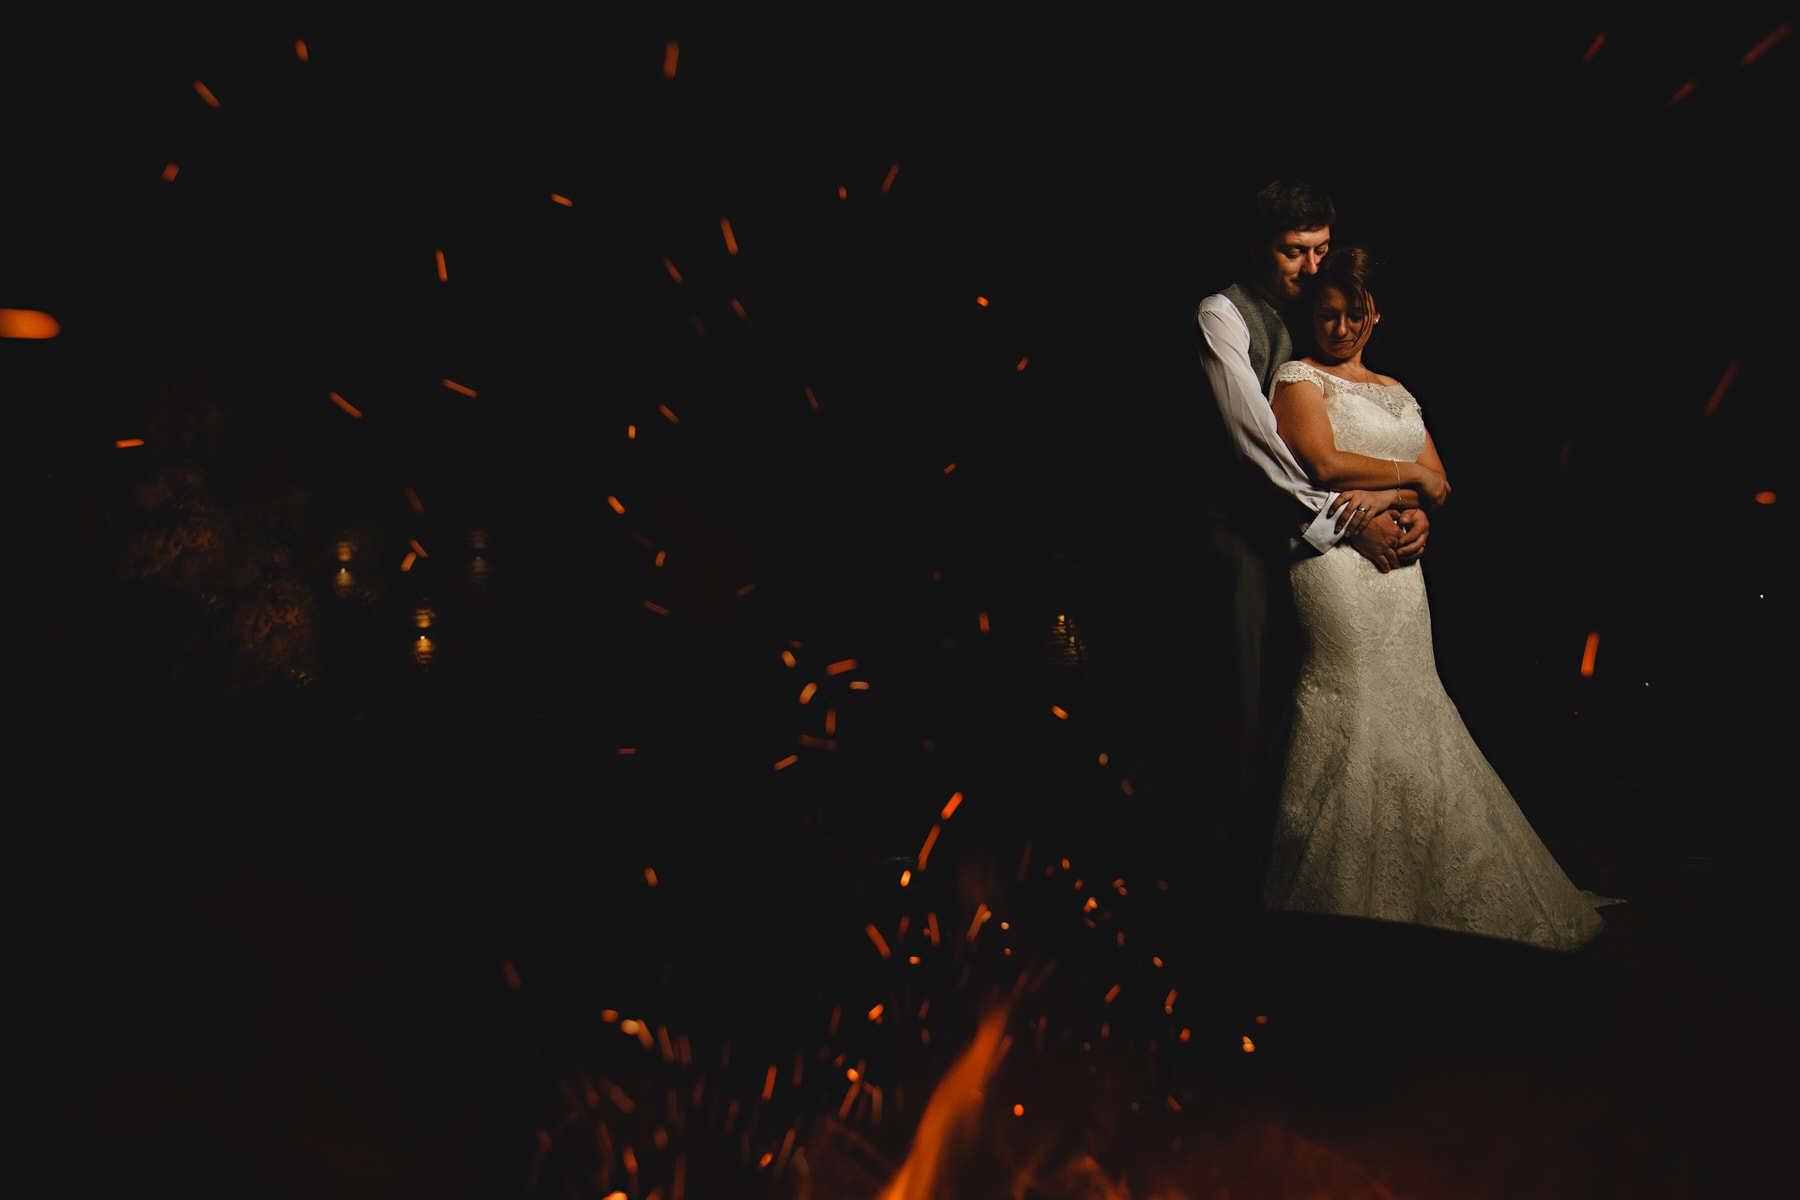 the bride and groom hugging by the fire pits at Shustoke Barns in Warwickshire